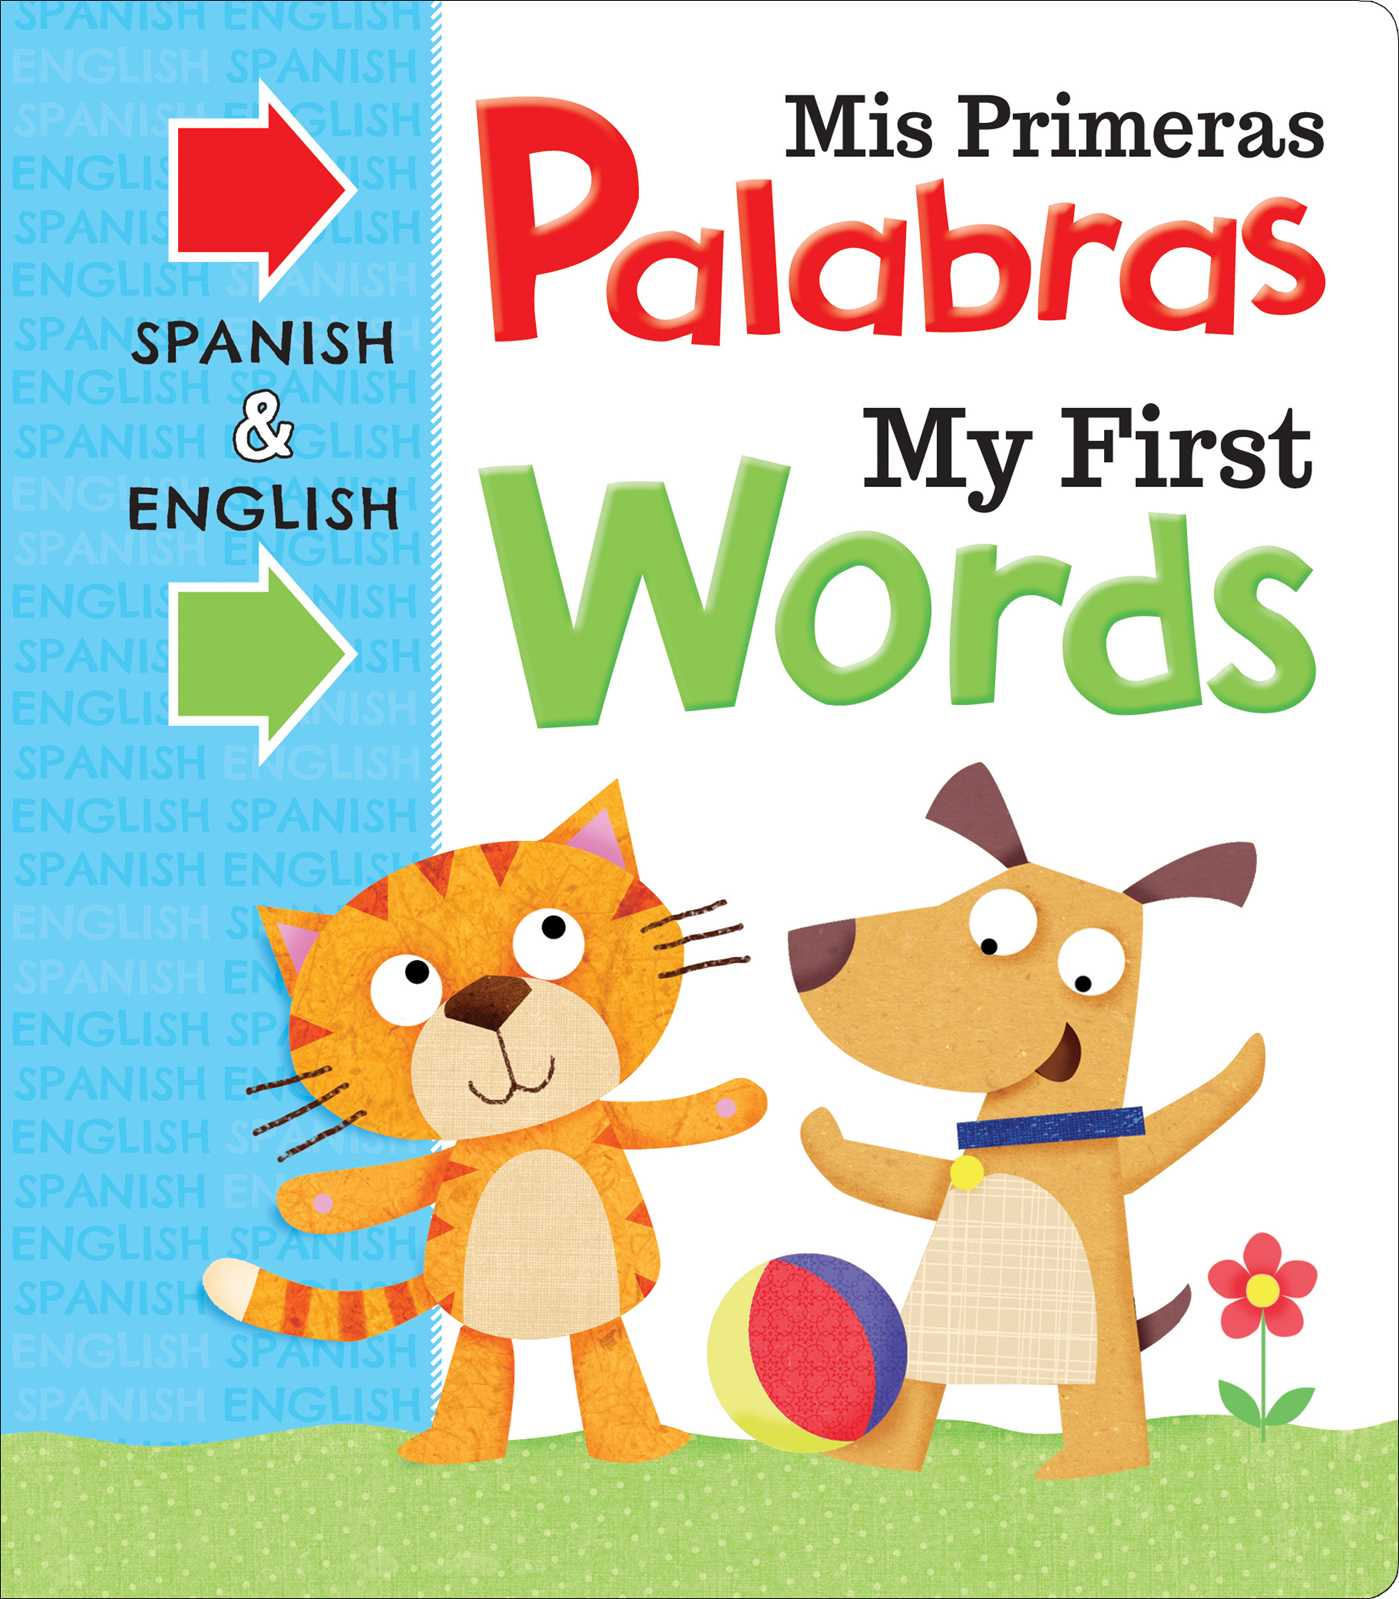 Mis primeras palabras my first words 9781499881455 hr